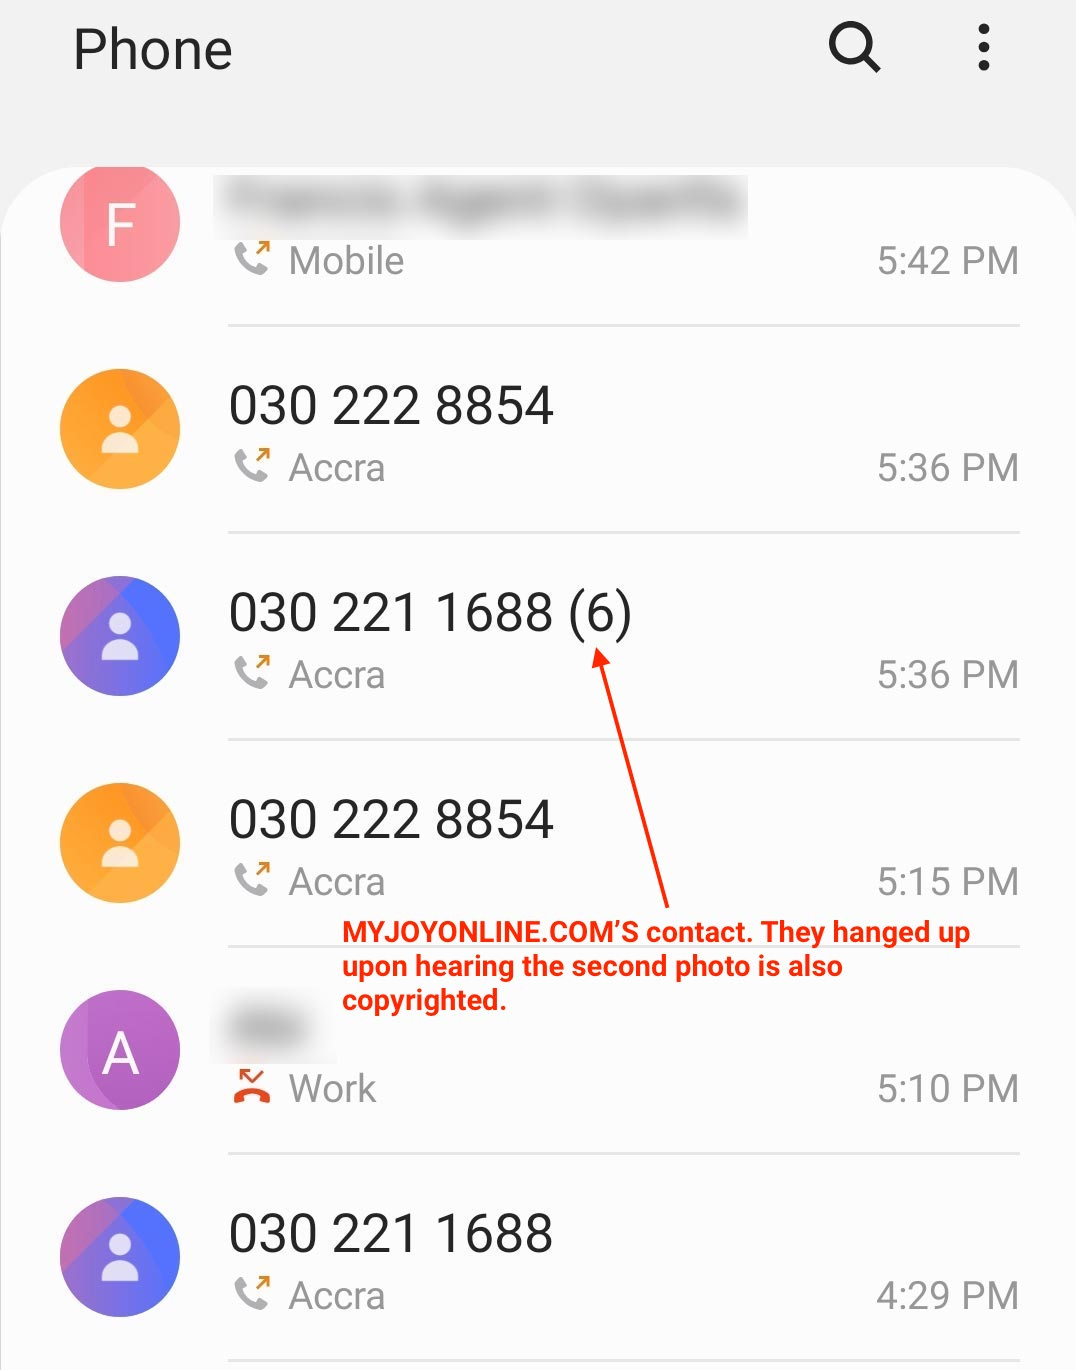 Phone records showing the number of times I called them on March 11, 2020. They stopped answering after hanging up on hearing that the second photo is also copyrighted.